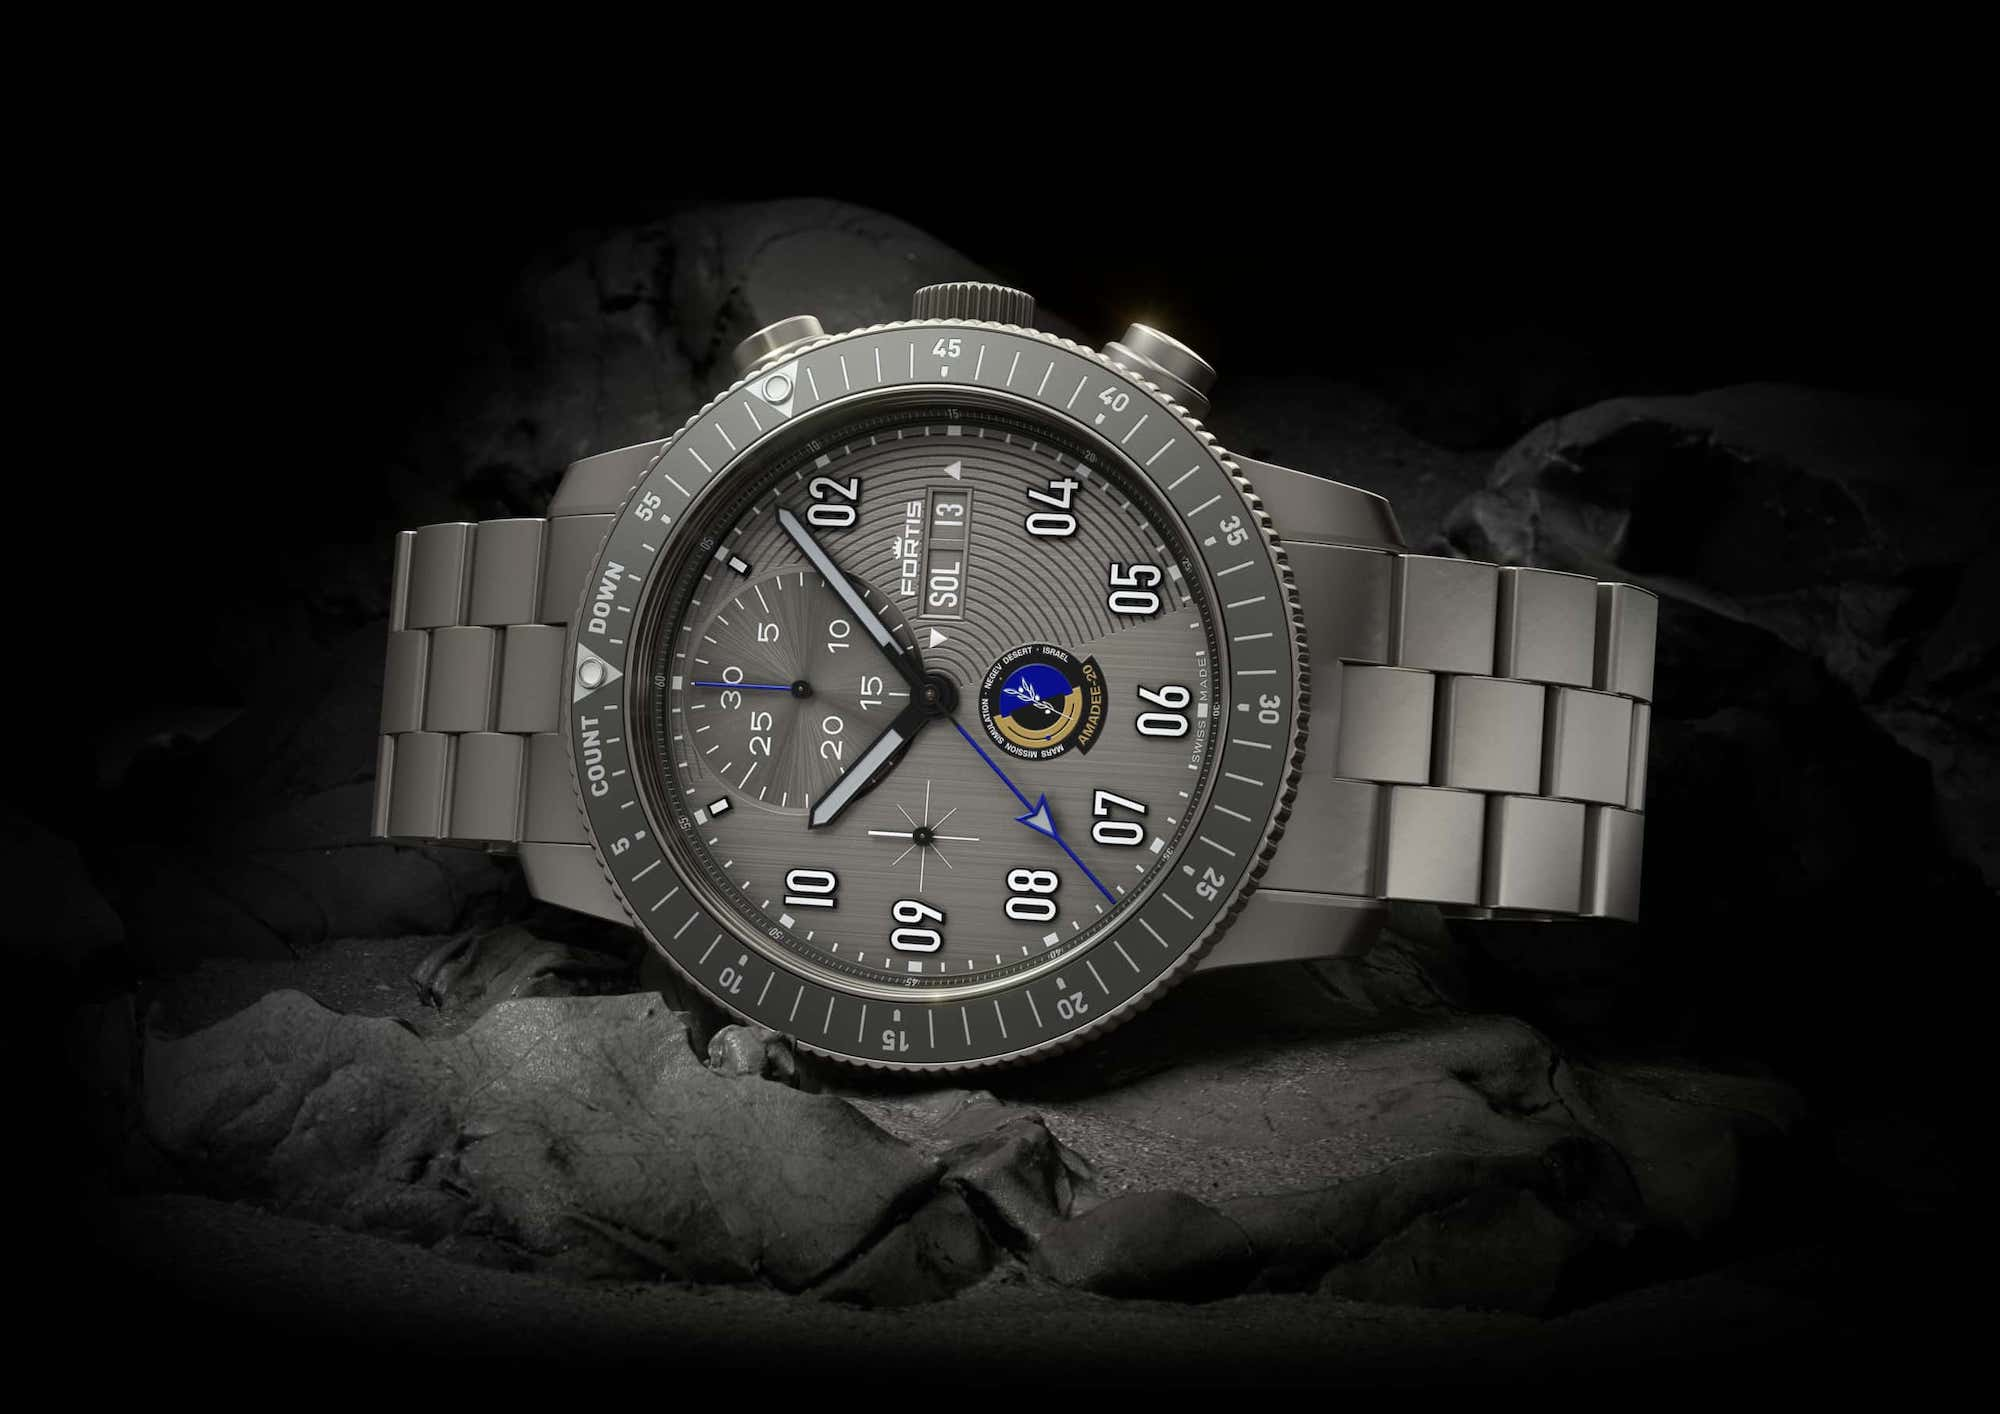 Fortis Official Cosmonauts Chronograph AMADEE-20 Lifestyle 3